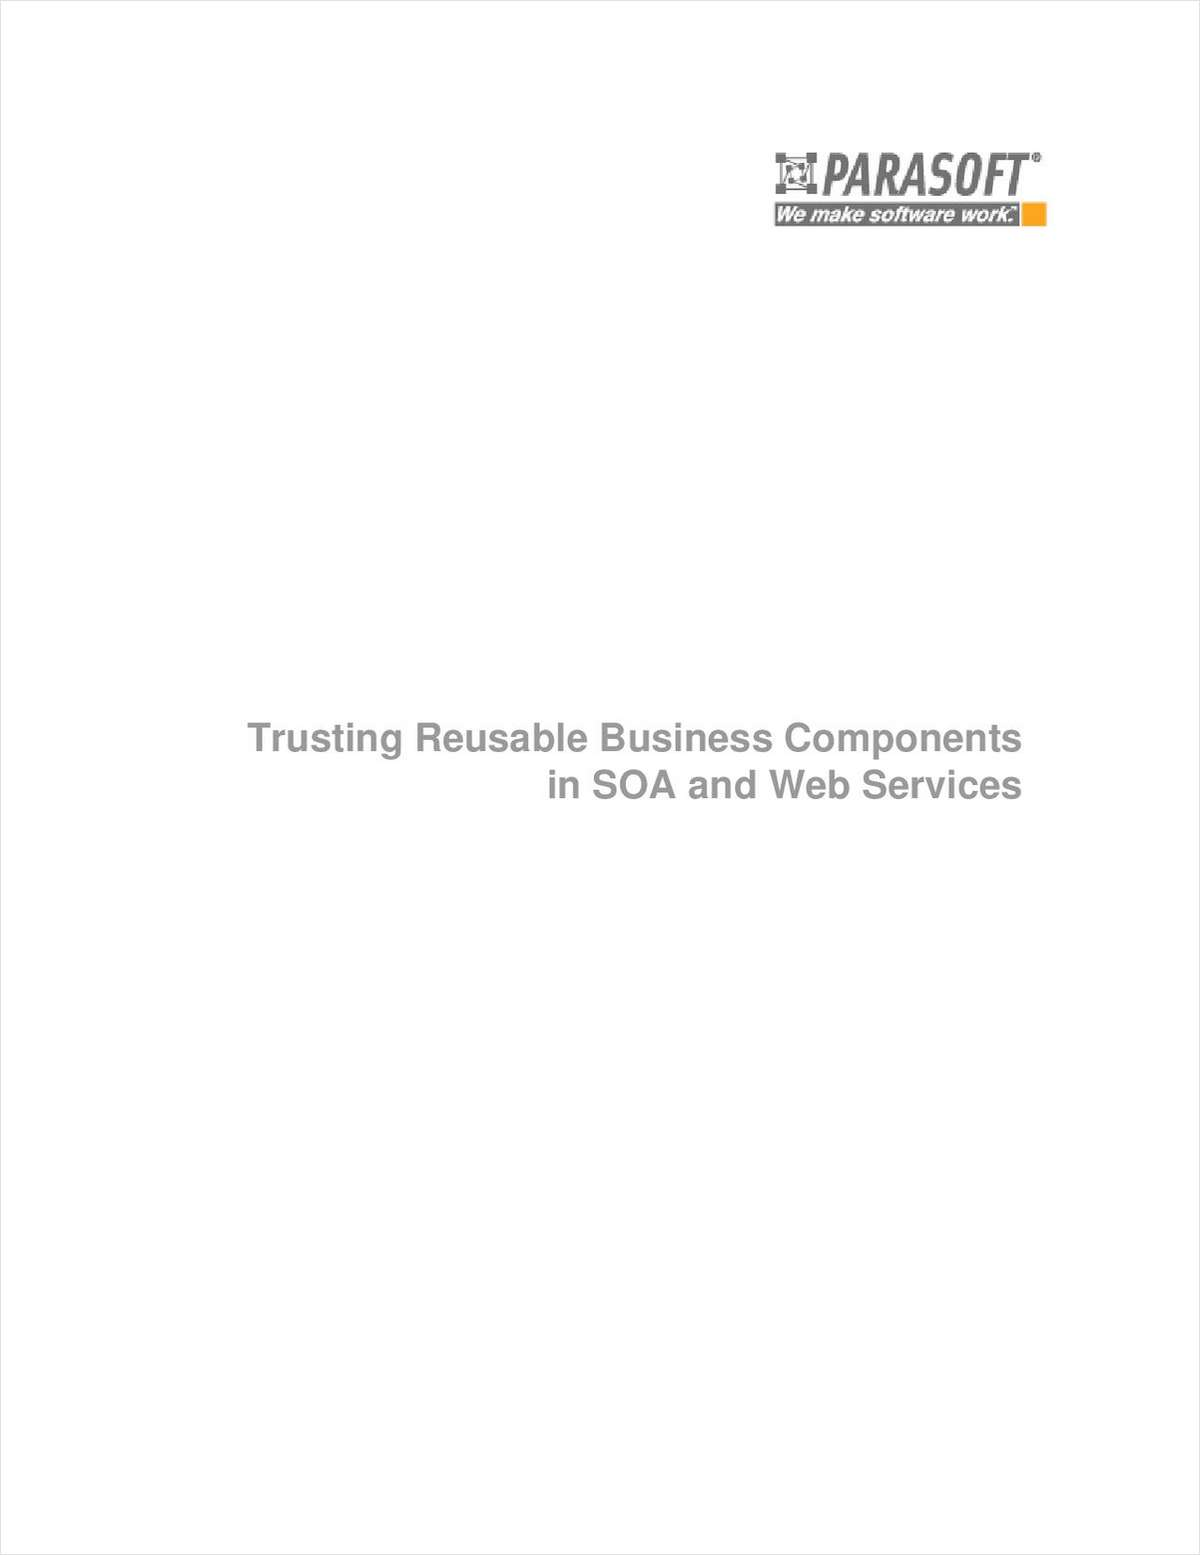 Trusting Reusable Business Components in SOA and Web Services